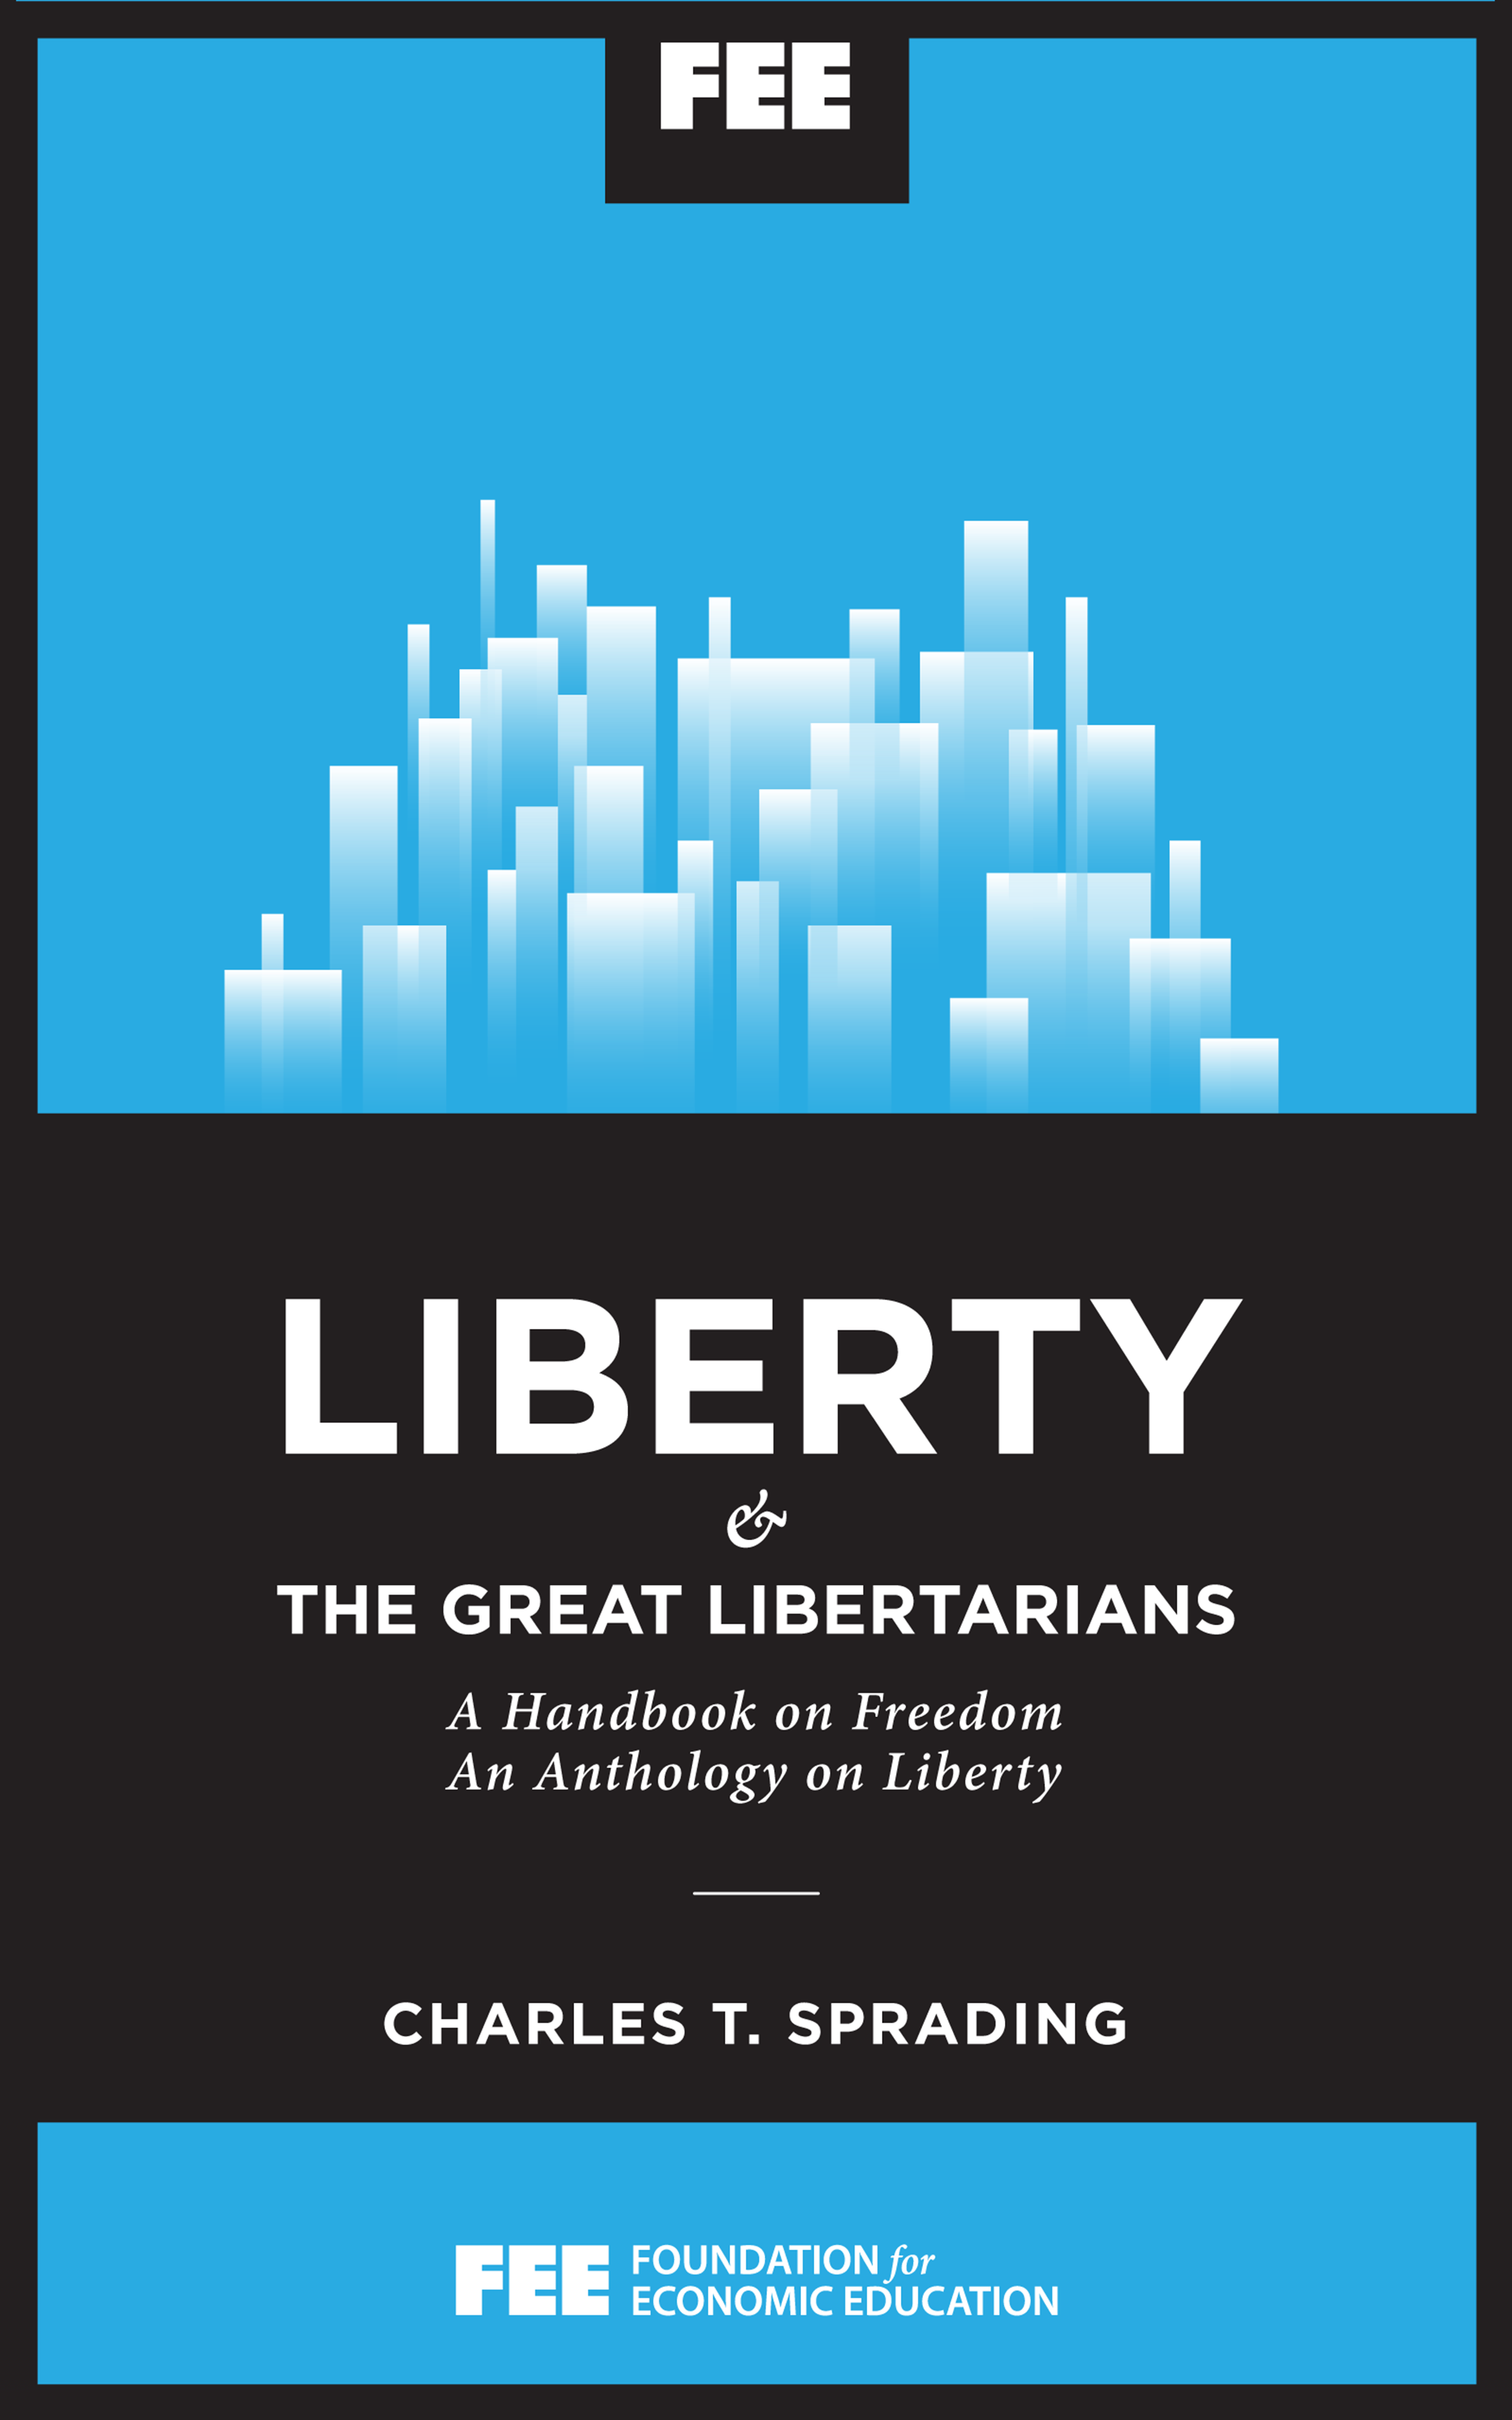 bd8bc37ff476 Liberty and the Great Libertarians - Foundation for Economic Education